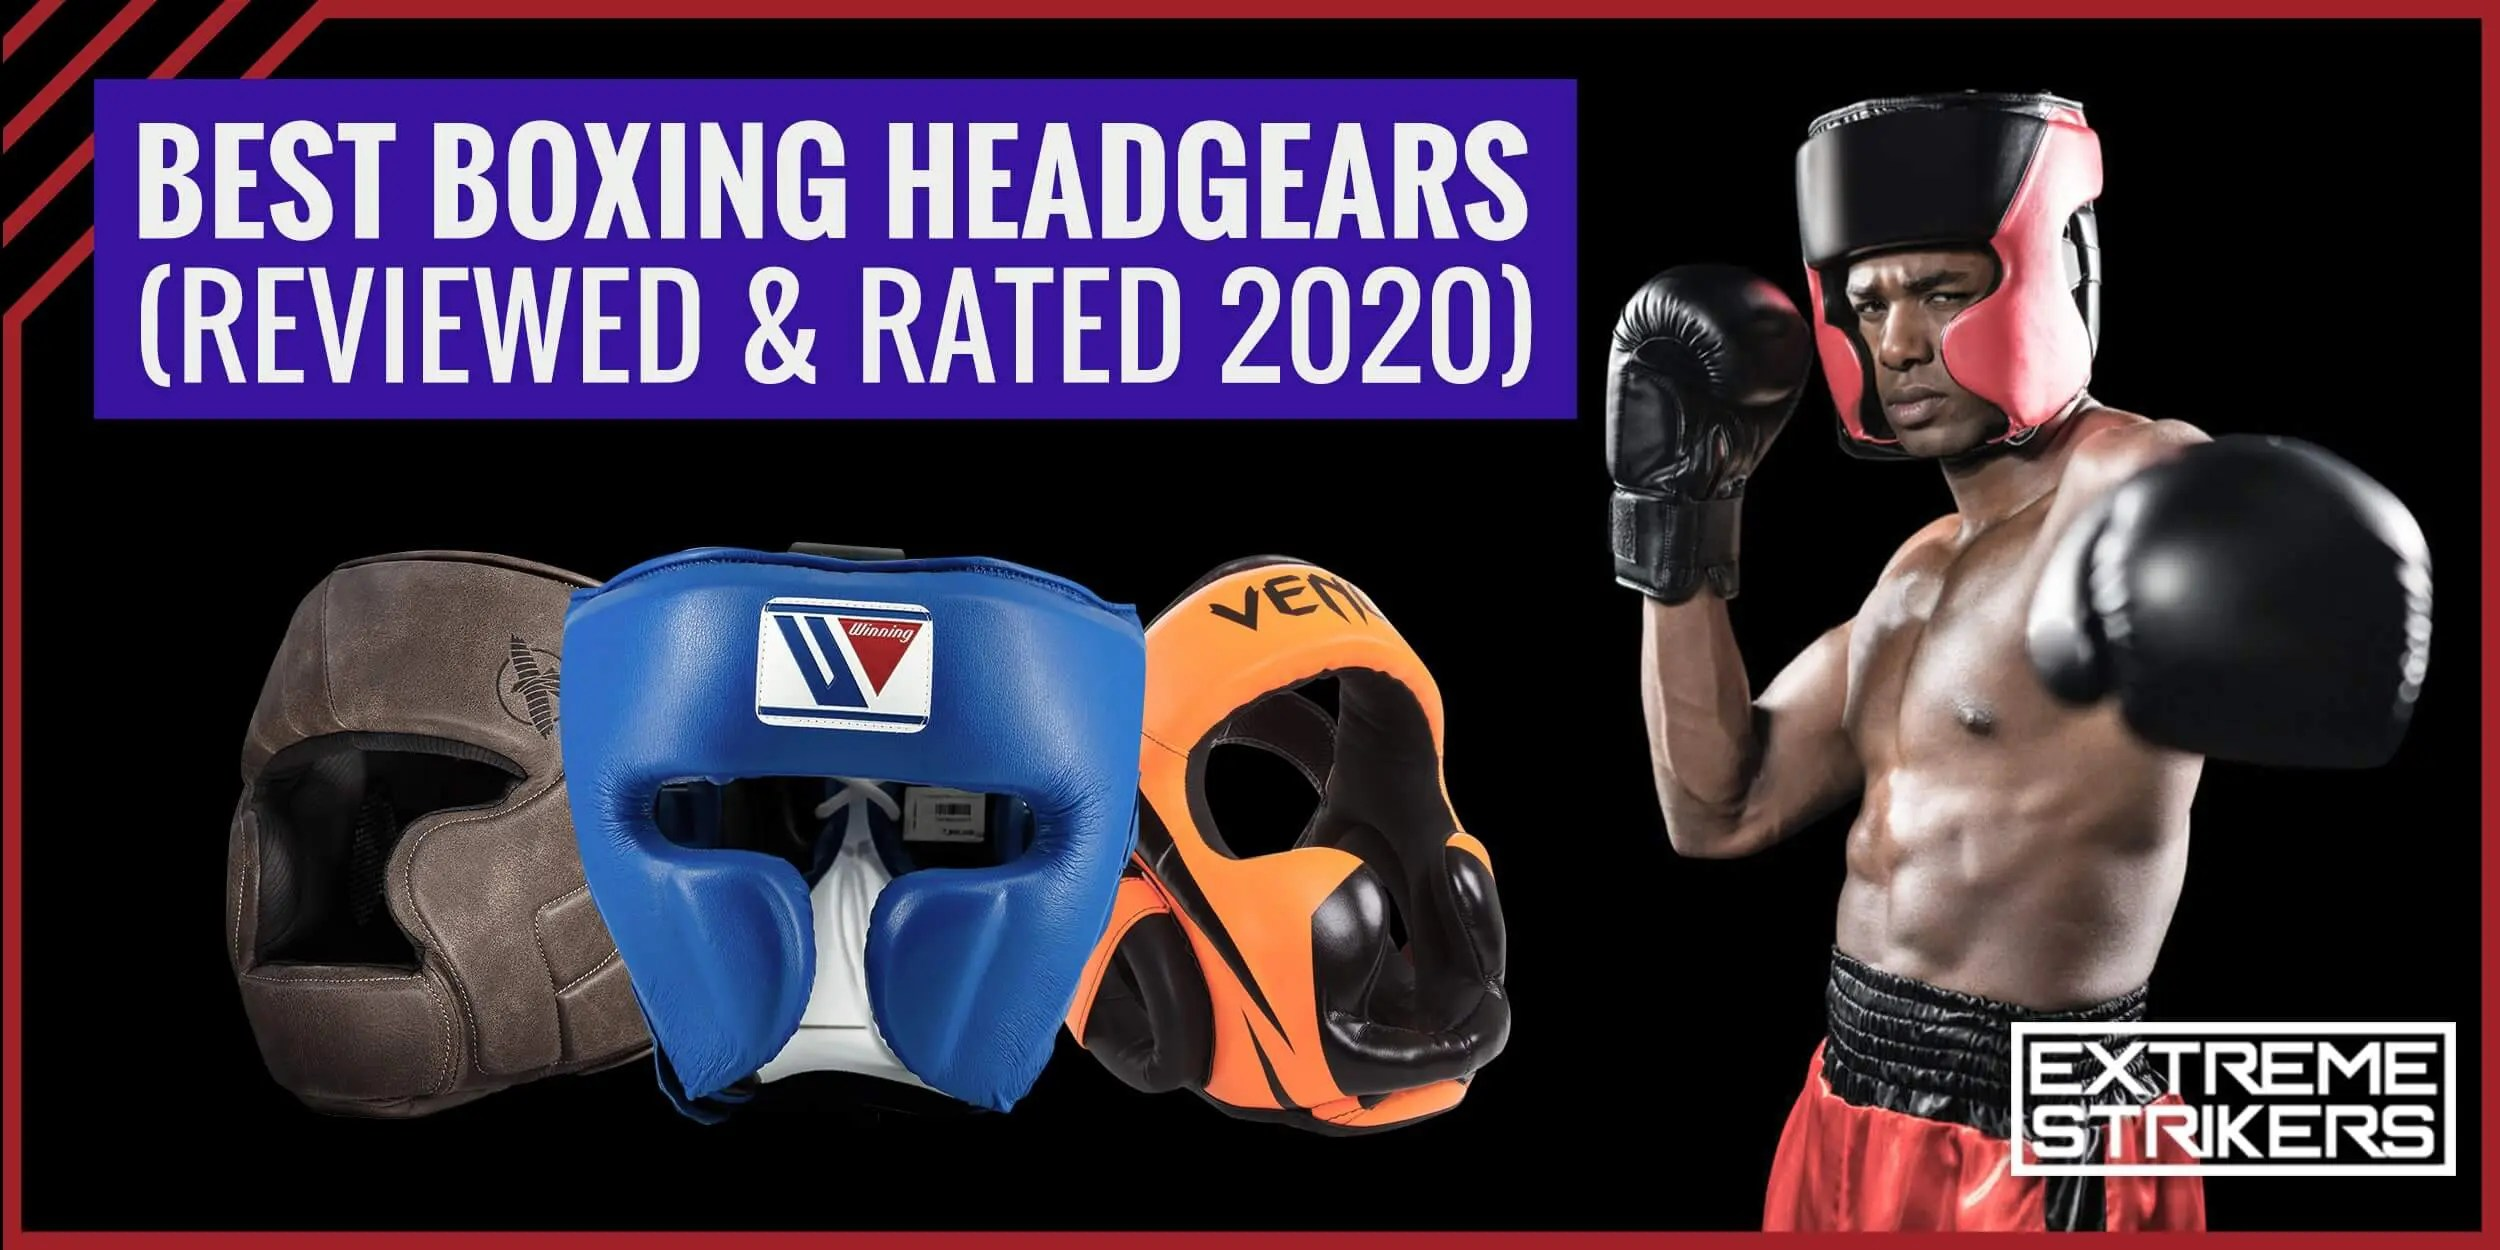 Best Boxing Headgear (REVIEWED & RATED 2020)